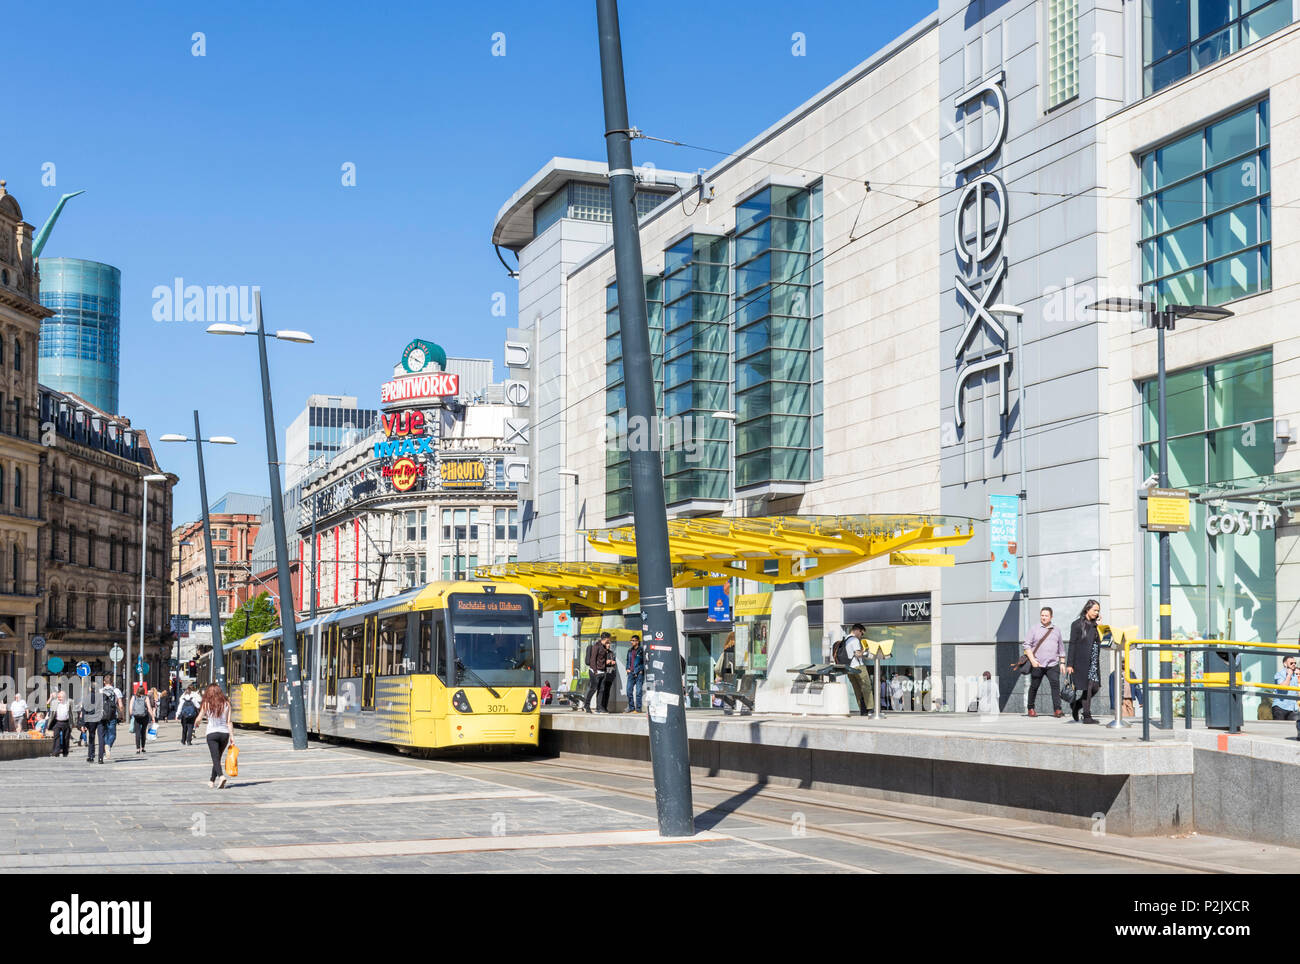 England Manchester England Manchester tram stop exchange square City centre city center Next store  manchester Arndale centre Manchester uk - Stock Image